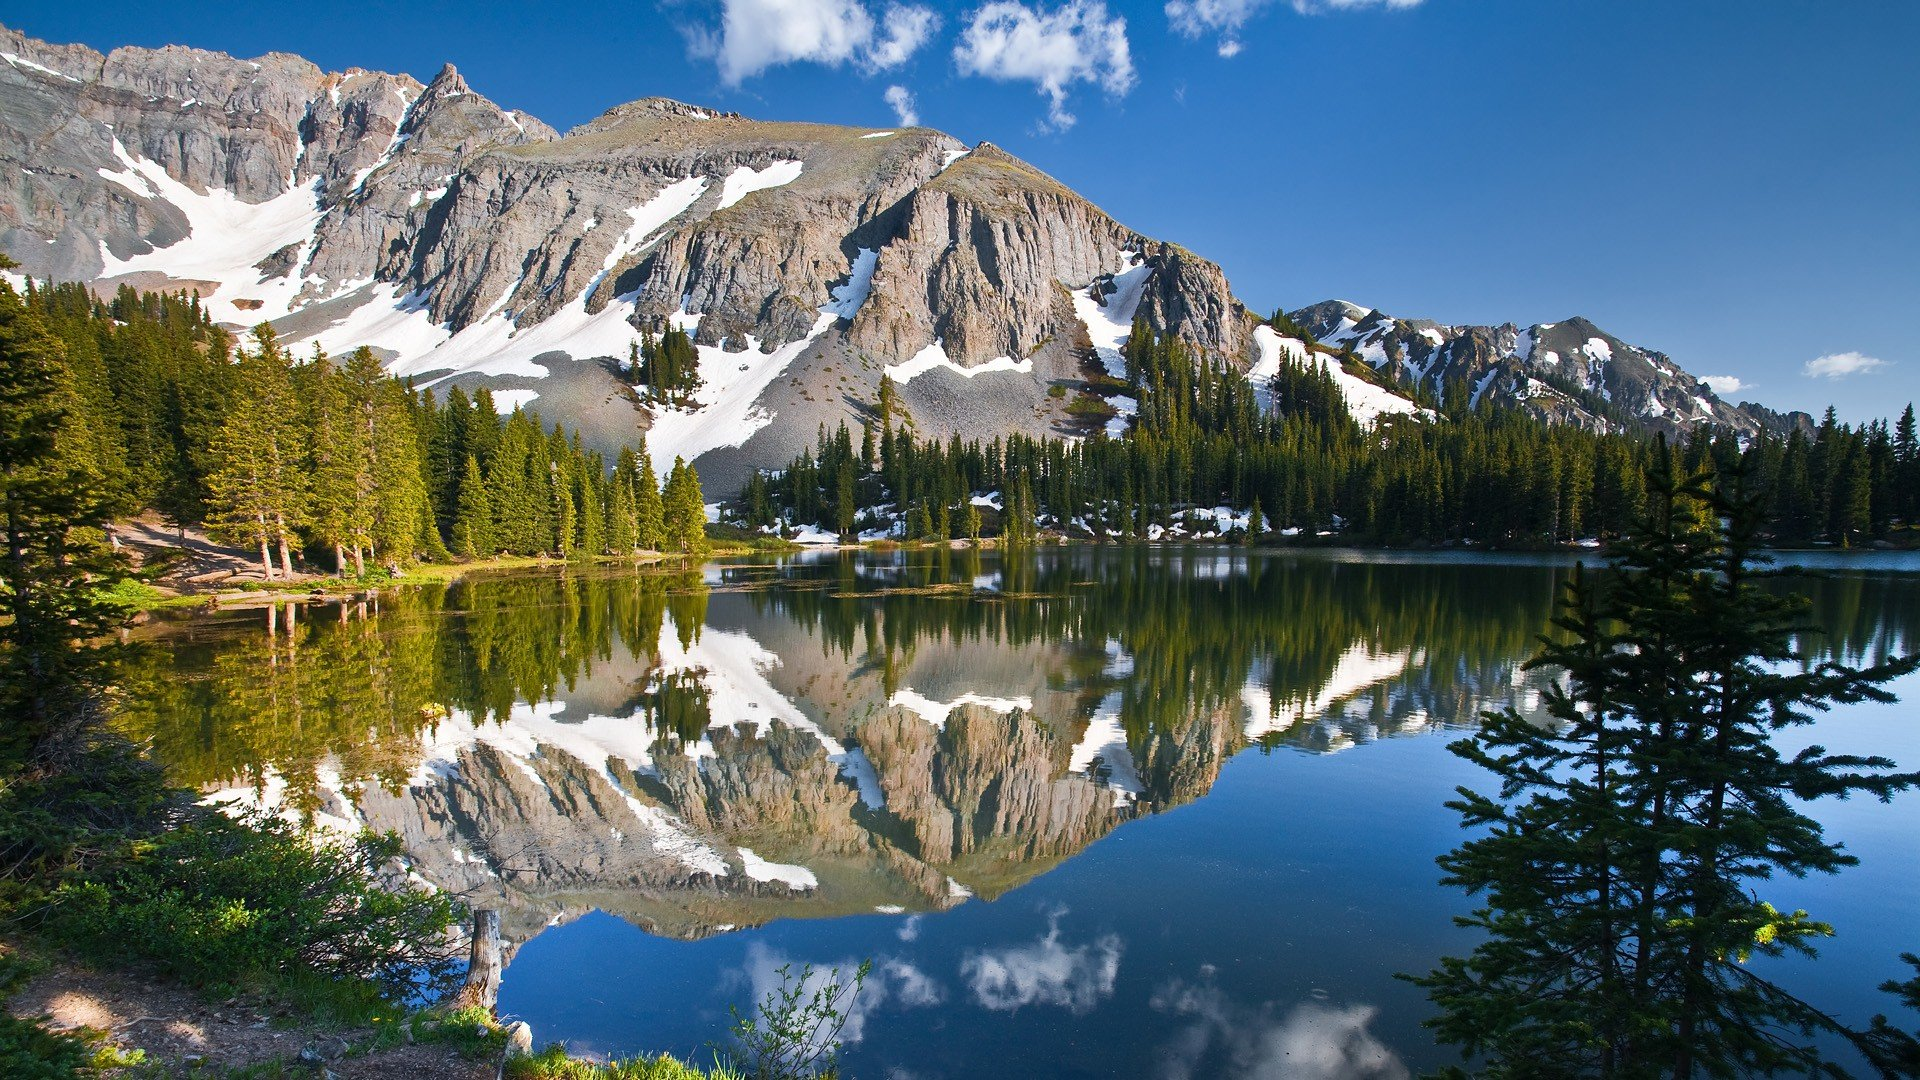 Alta Lake Rocky Mountains 1920x1080 1080p   Wallpaper   ImgPrix 1920x1080